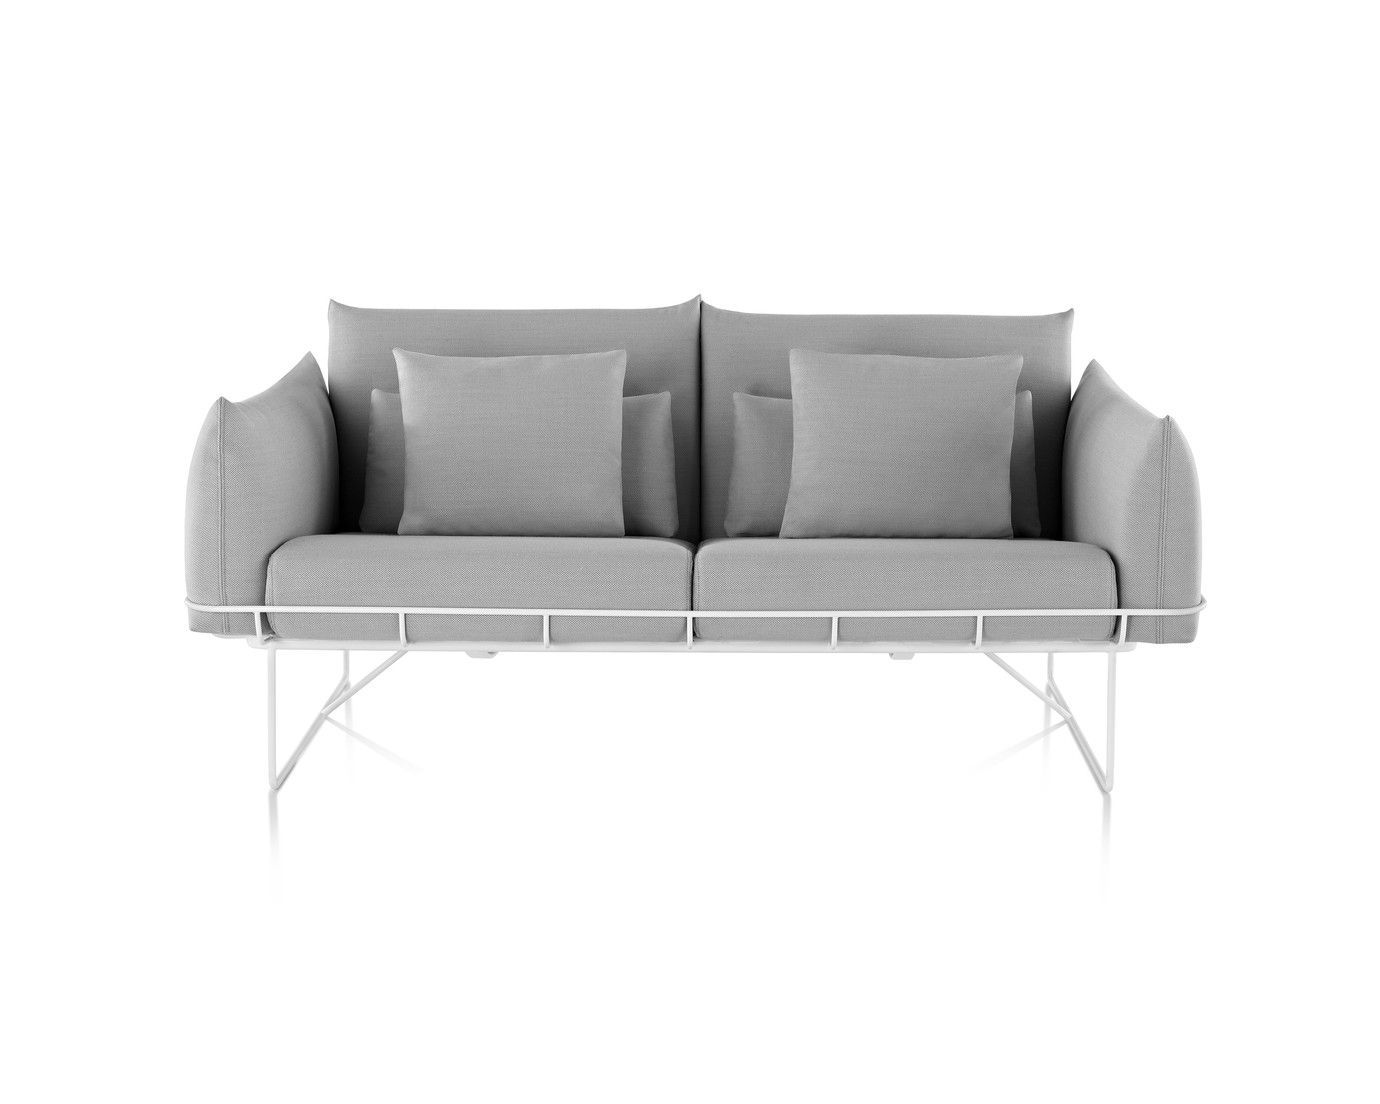 4-Silla-Lounge-Wireframe-Frontal-1380